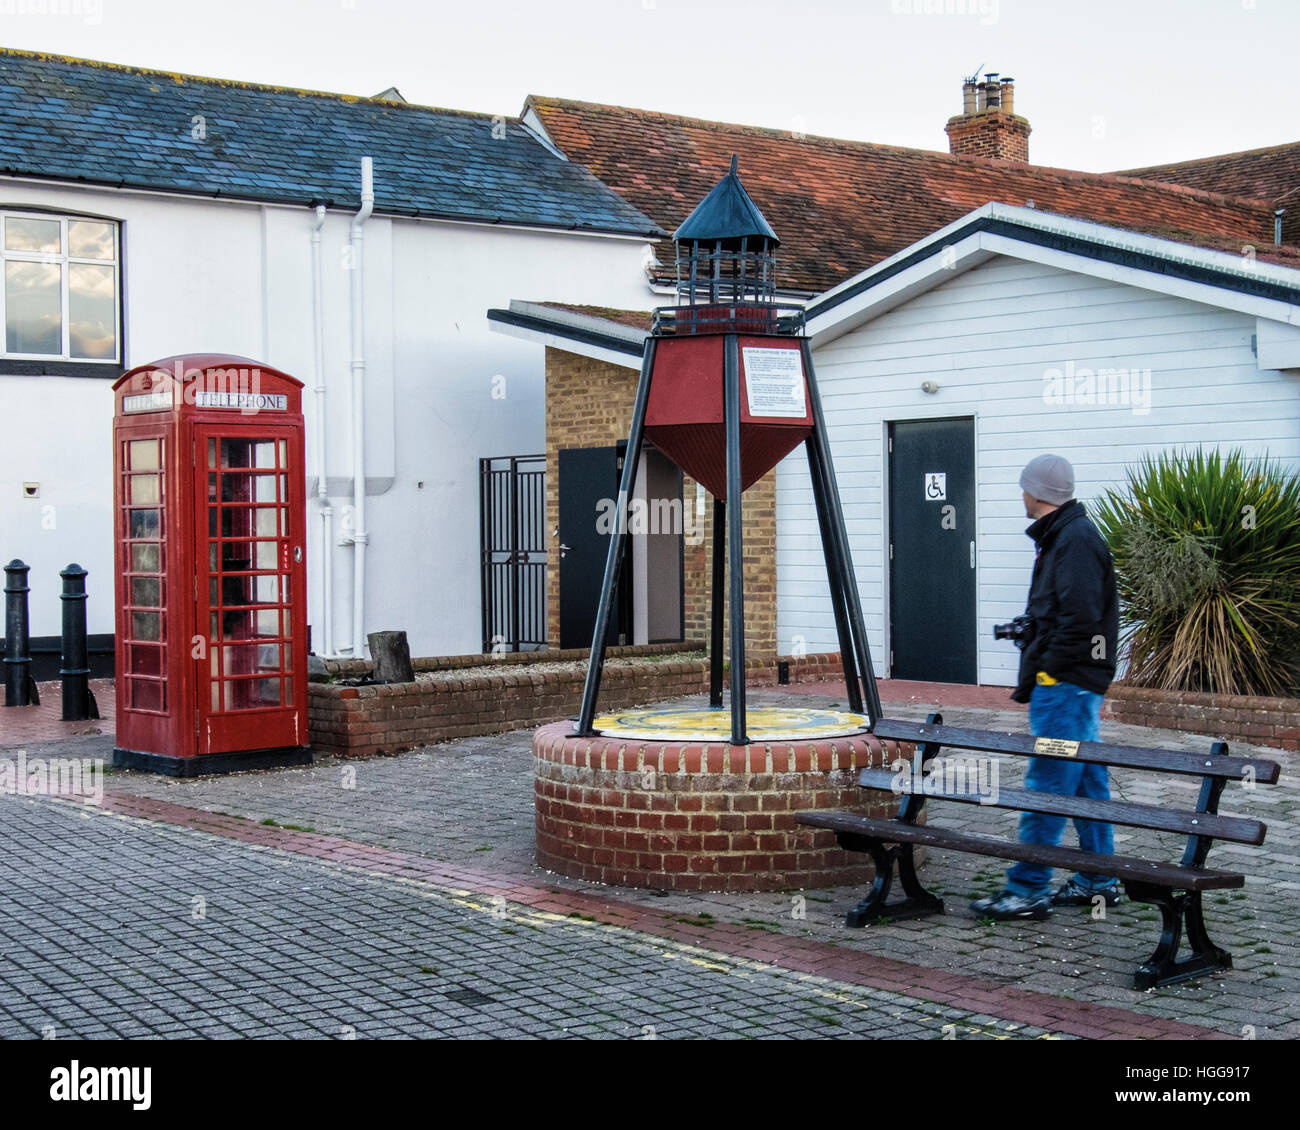 Burnham on Crouch,Essex, England.  Man looking at Old Maplin Lighthouse model at Riverside village & holiday - Stock Image